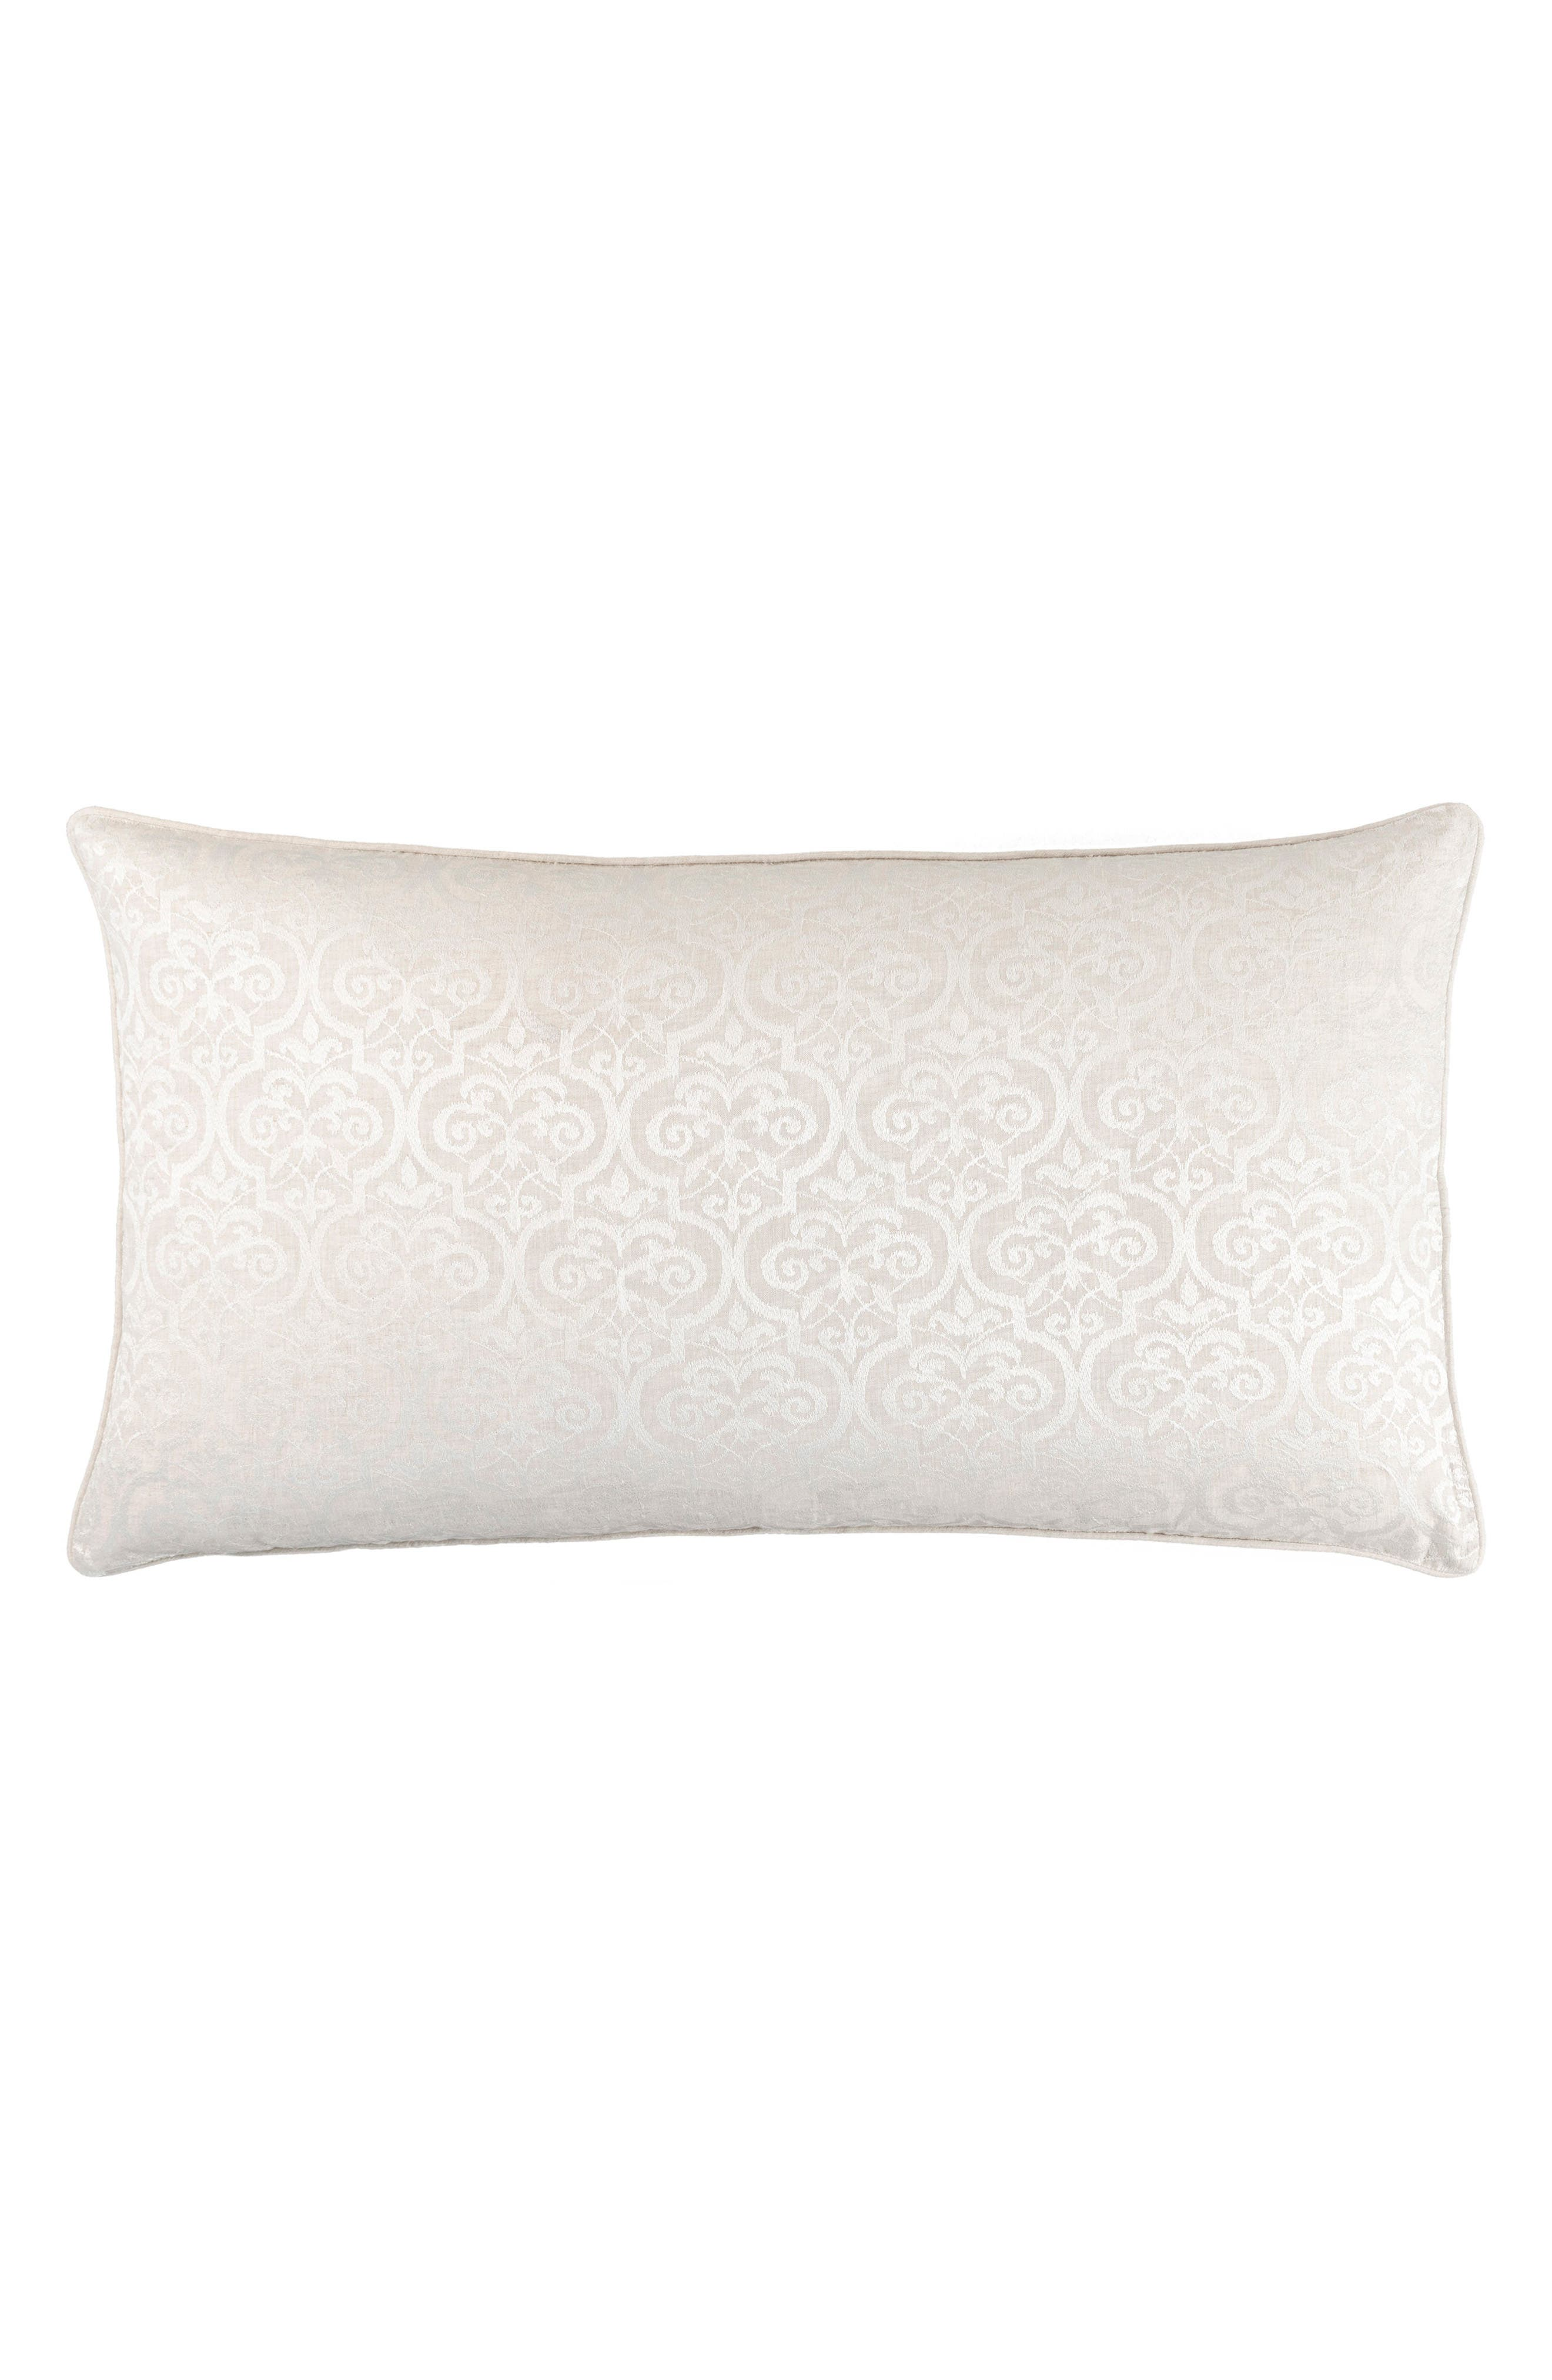 Gwendolyn Embroidered Accent Pillow,                             Main thumbnail 1, color,                             Ivory